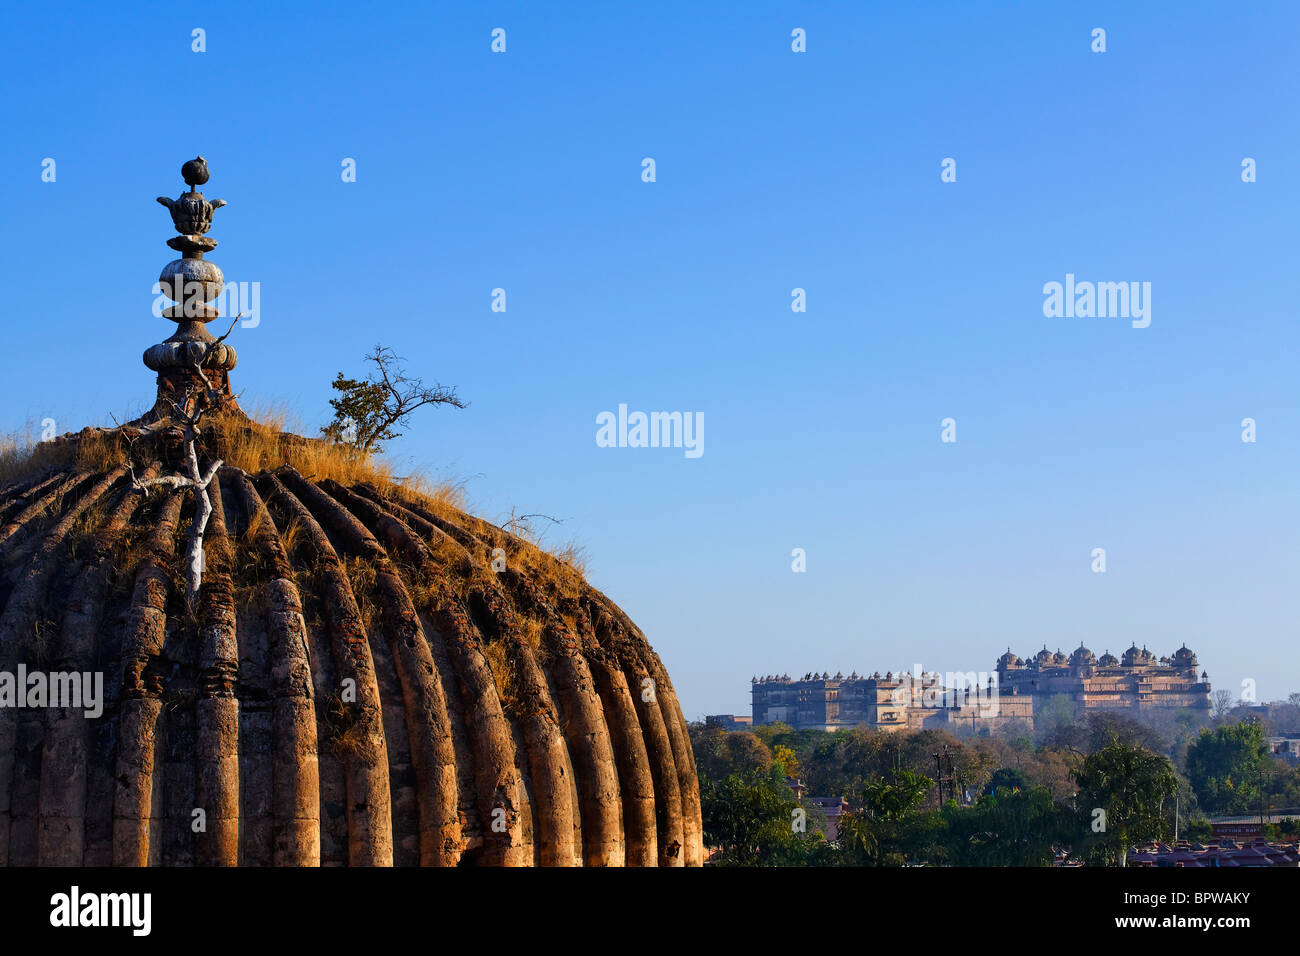 Dome of a cenotaph with the Raj Mahal in the background, Orchha, Madhya Pradesh, India - Stock Image